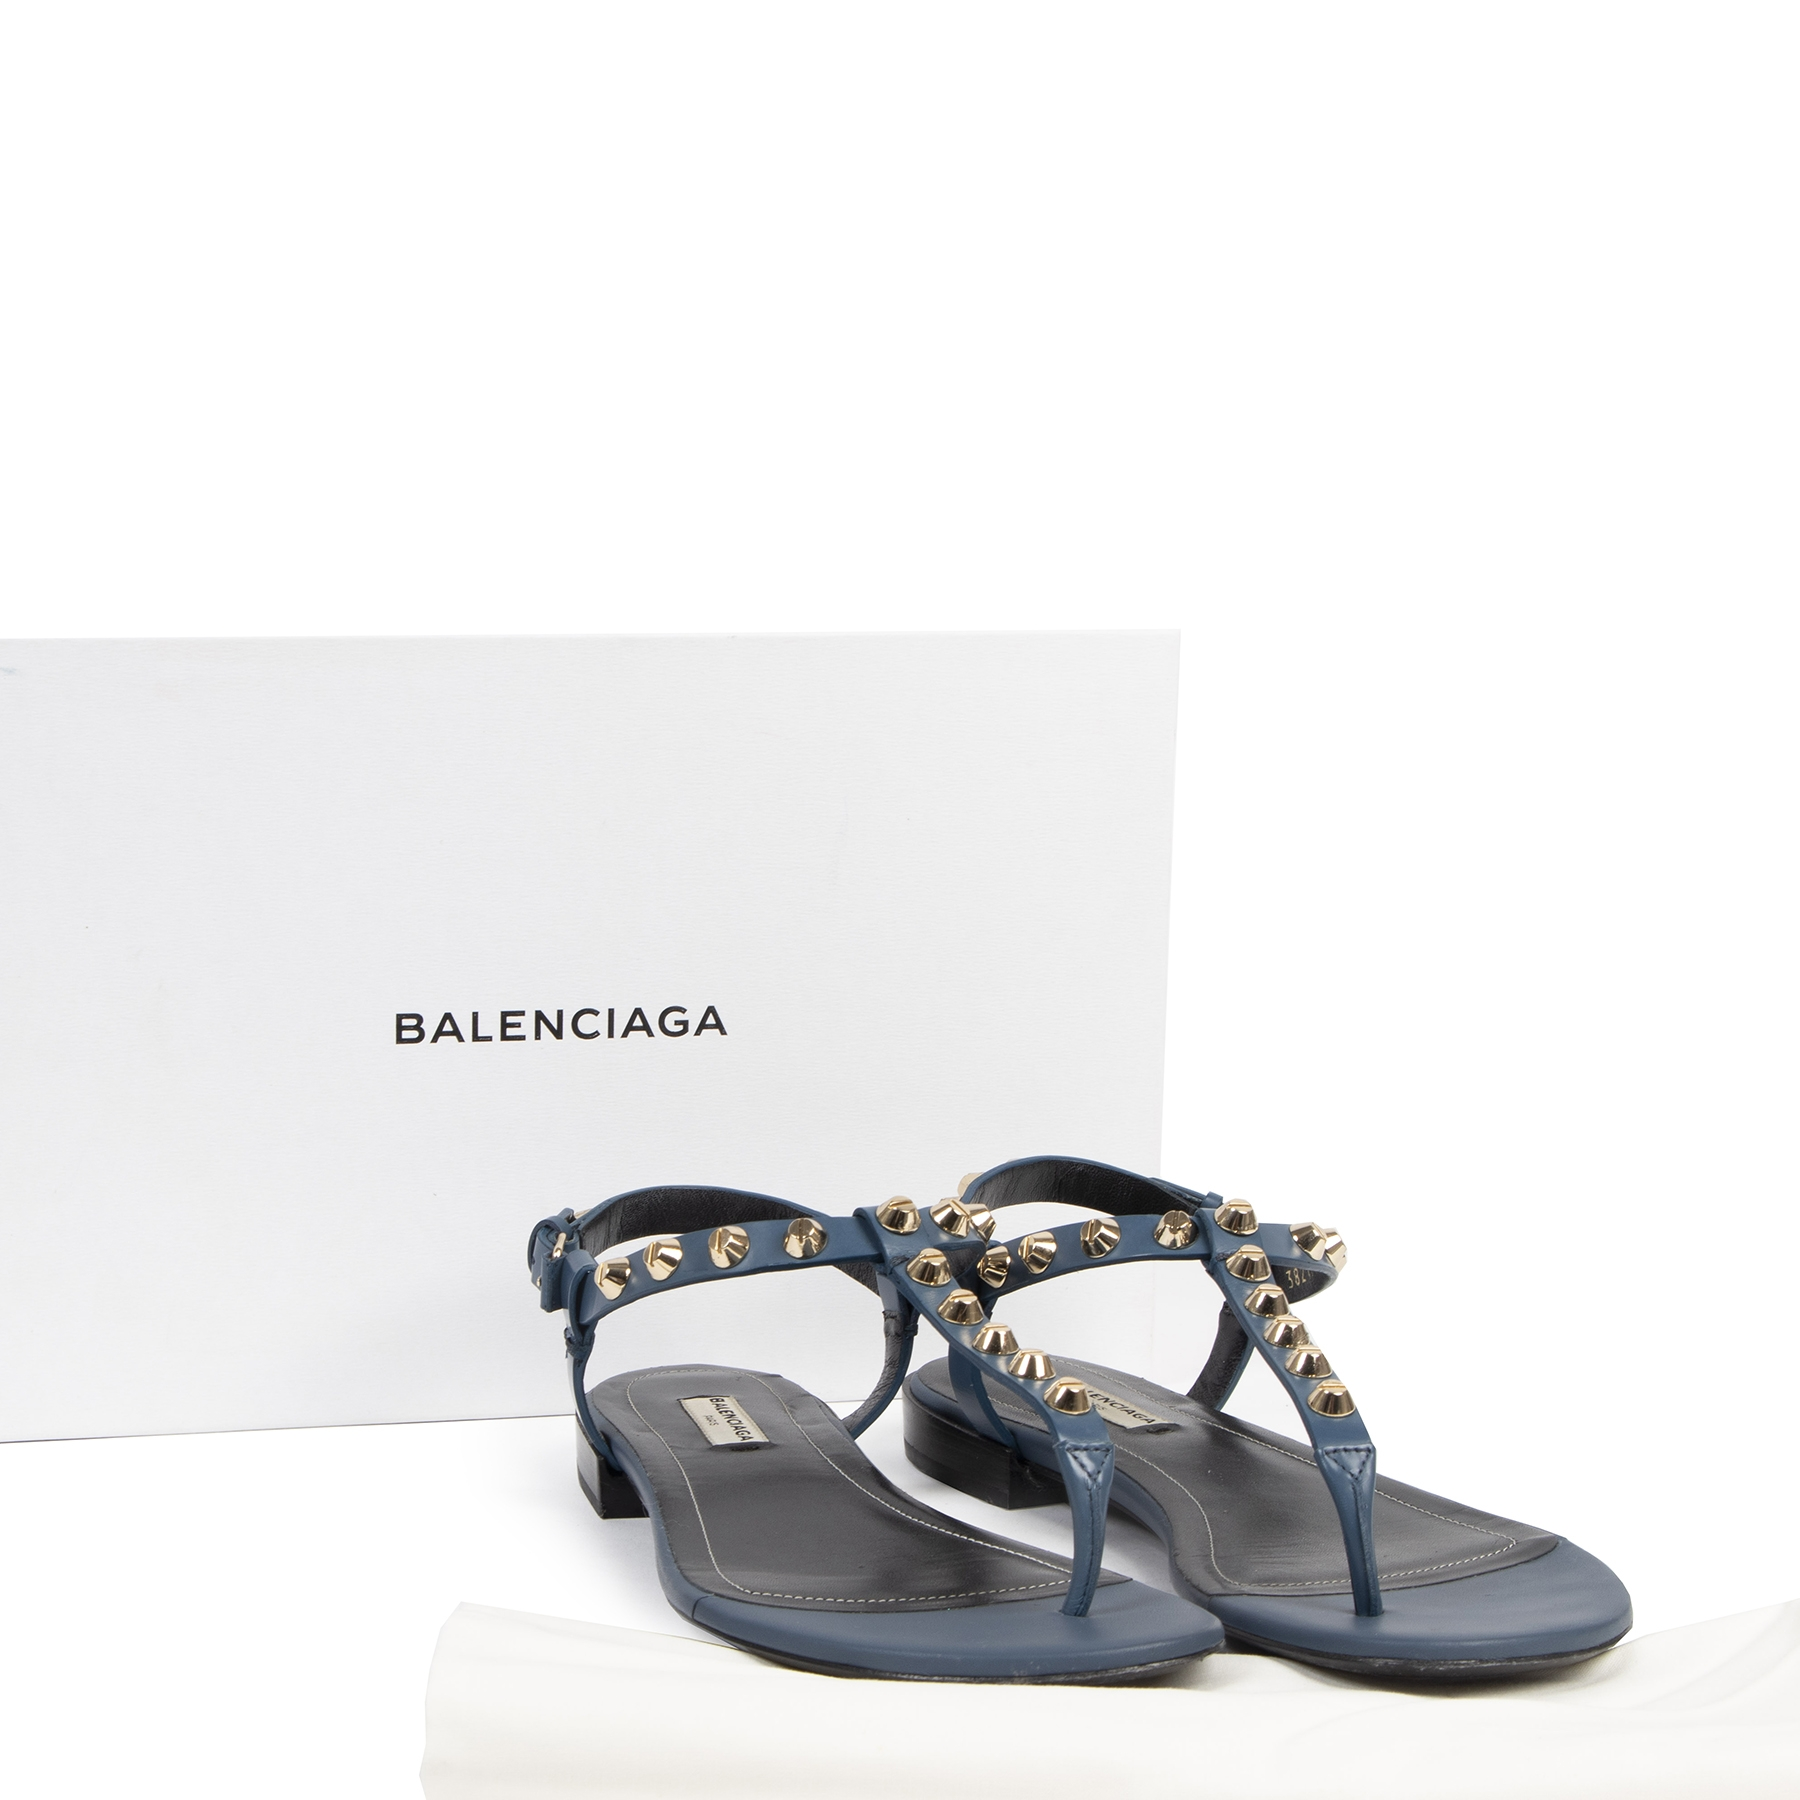 Authentic secondhand Balenciaga Blue Studded City Sandals - size 40,5 designer shoes brands fashion luxury vintage webshop safe secure online shopping